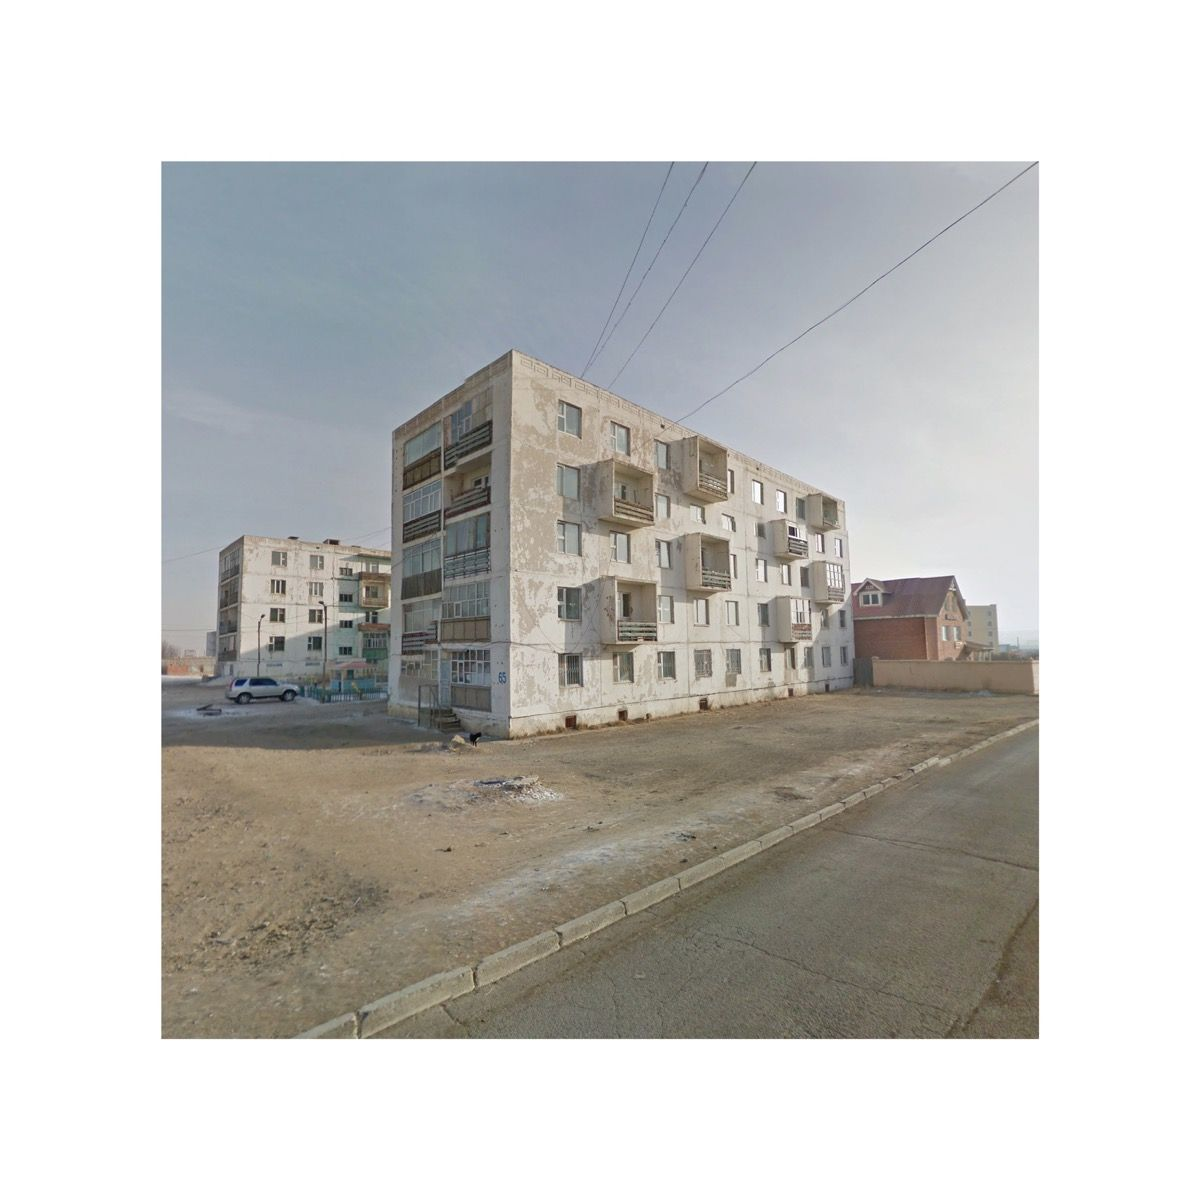 Apartment Block, Mongolia. Google Copyright/Created by Jacqui Kenny